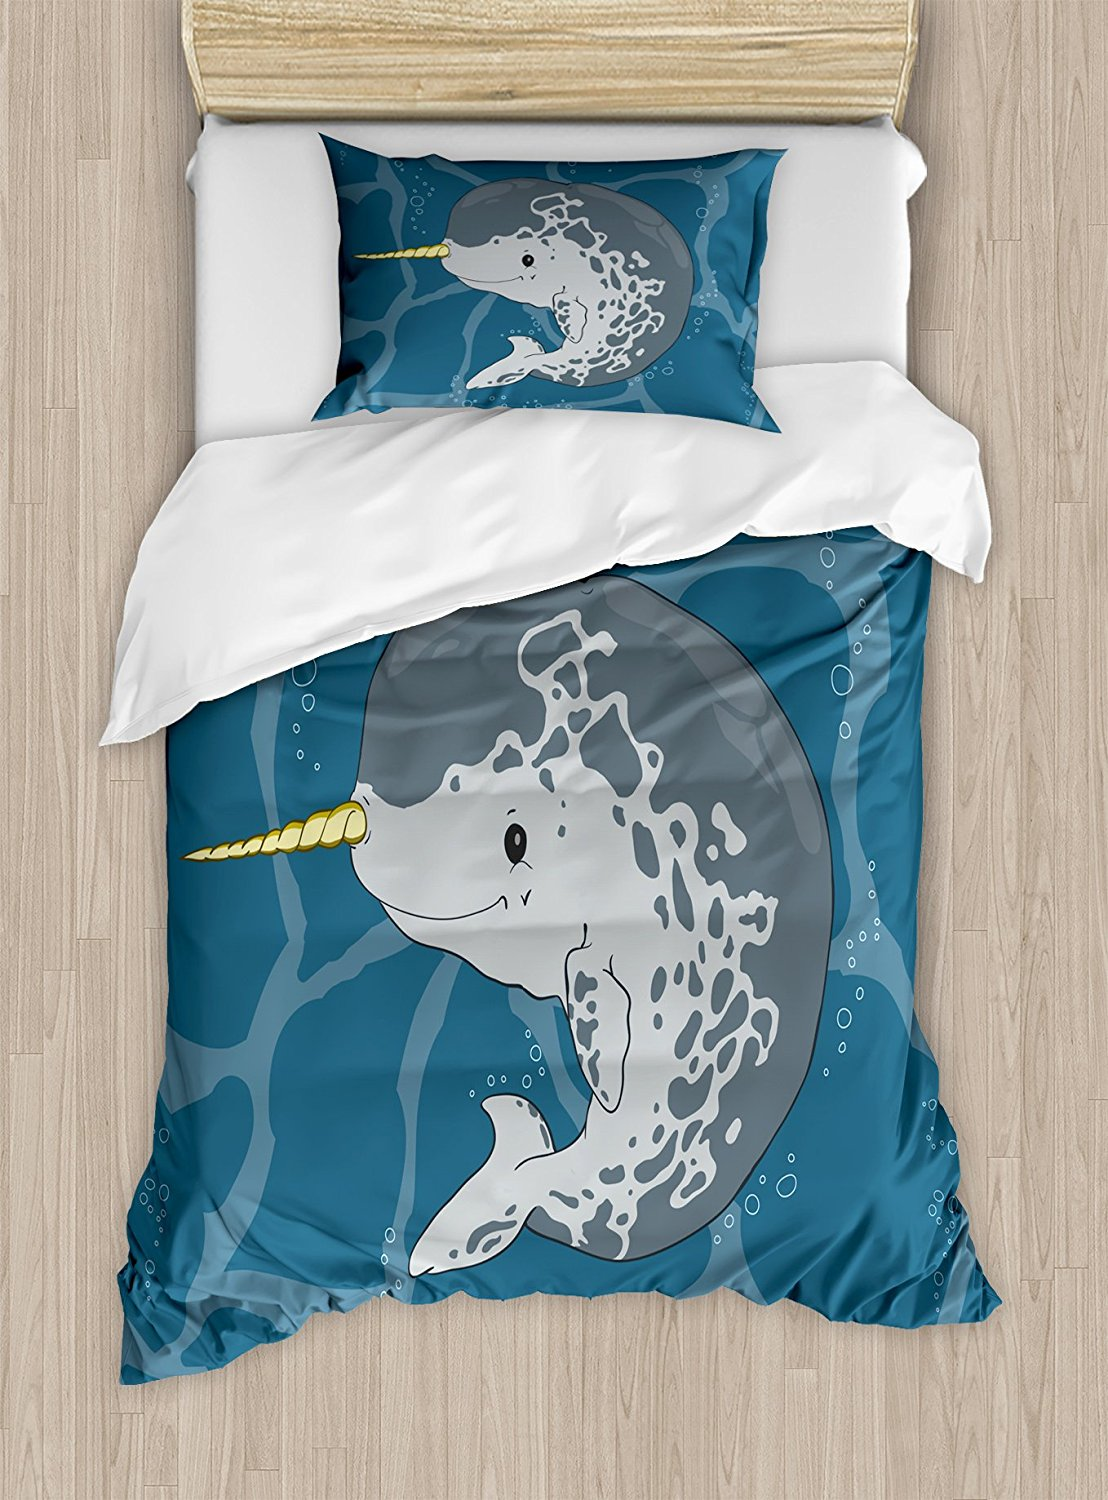 Narwhal Duvet Cover Set Happy Arctic Ocean Whale with Horn Swimming in the Sea Cartoon Style Animal Drawing 4pcs Bedding Set